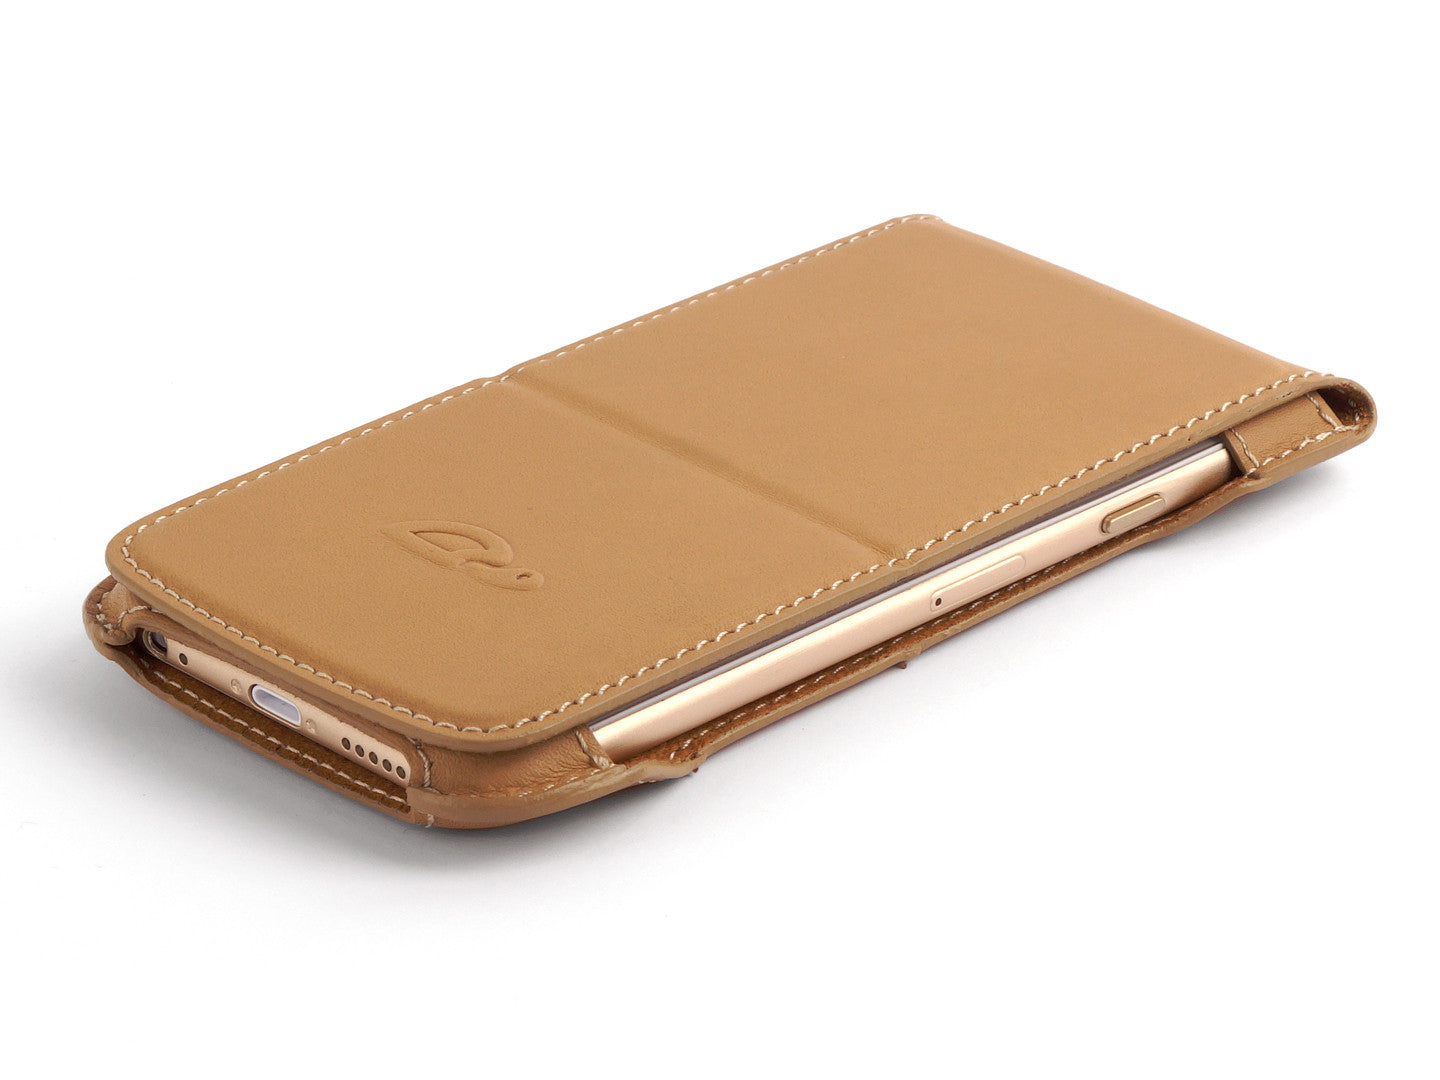 sneakers for cheap 941ce e79b3 iPHONE 6 / 6 PLUS LEATHER FLIP CASE - CAMEL